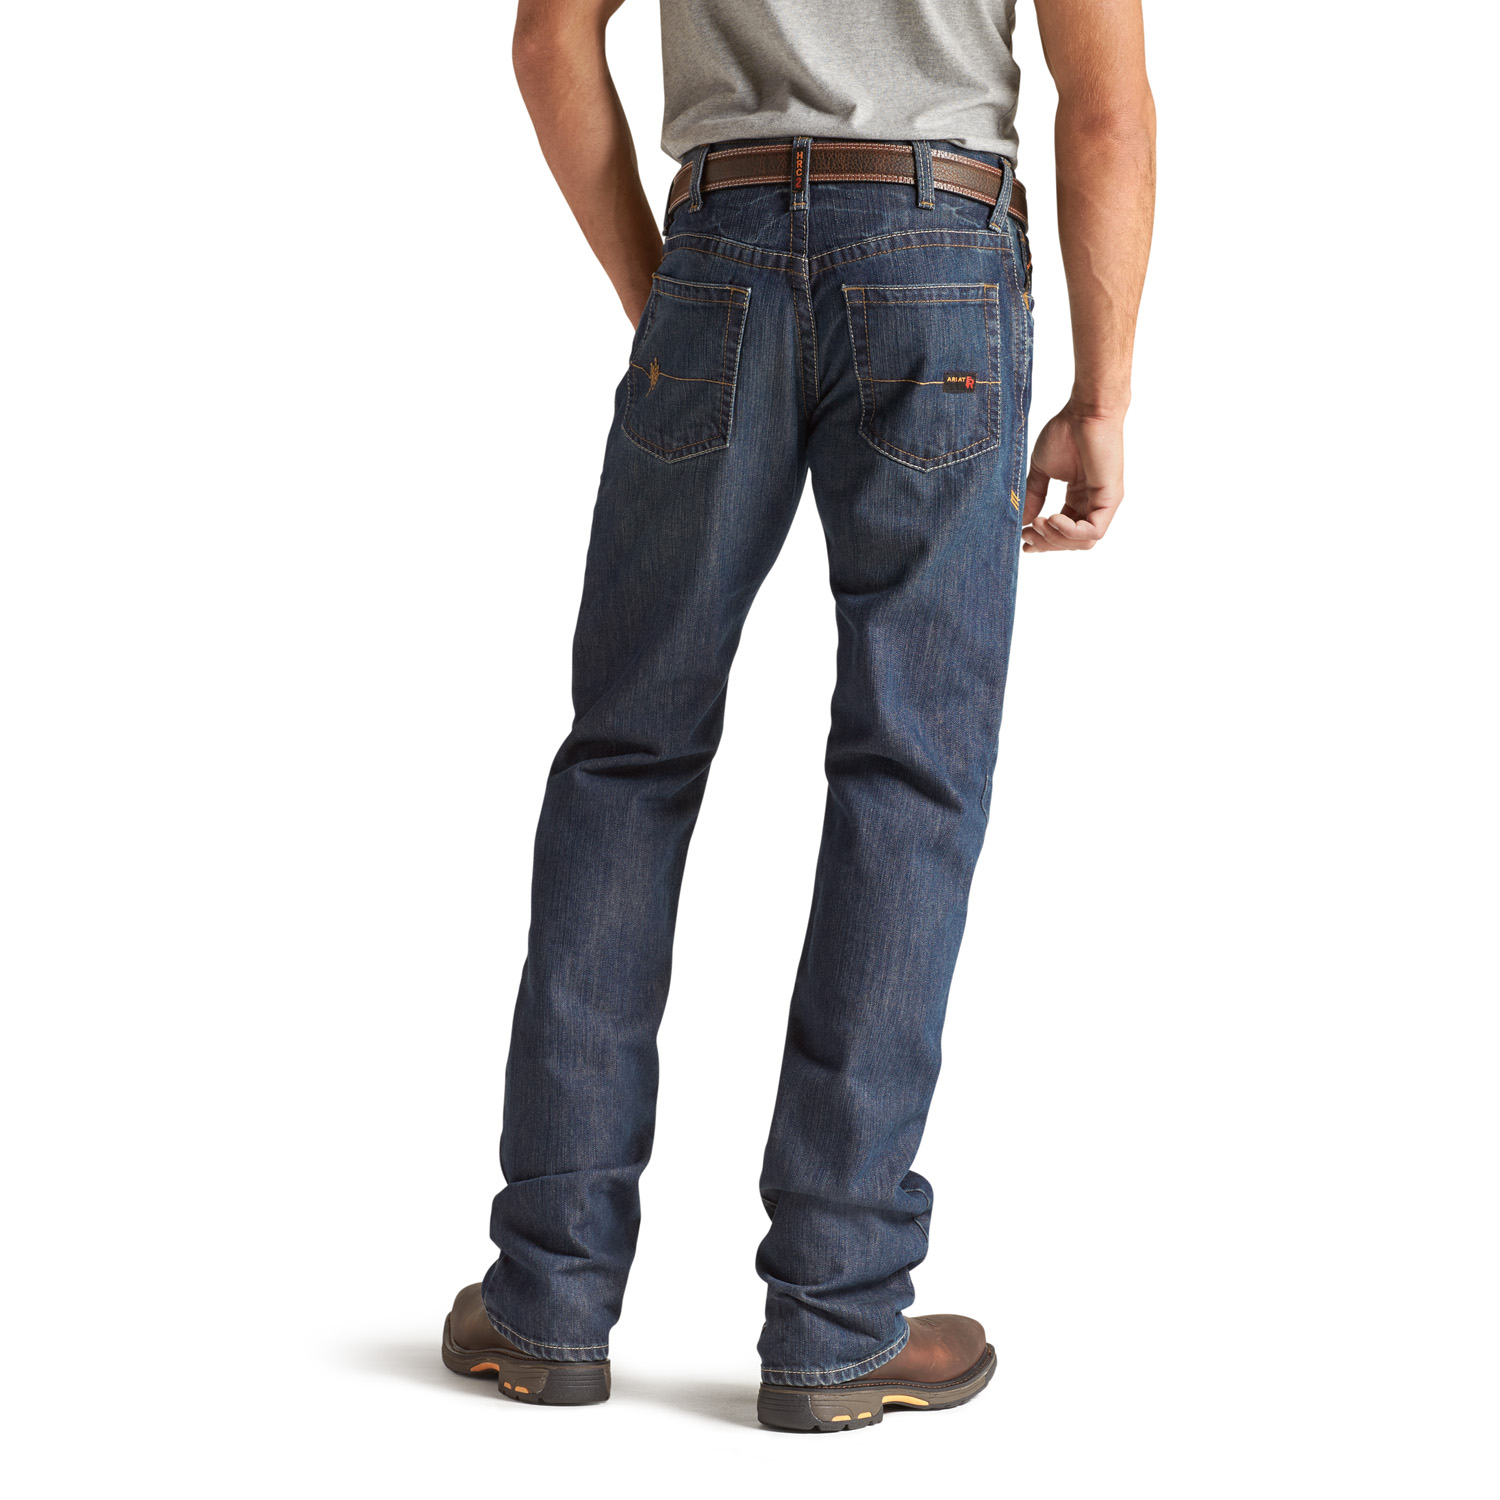 Men's FR Jeans -  M4 - Basic Boot Cut - 10012555